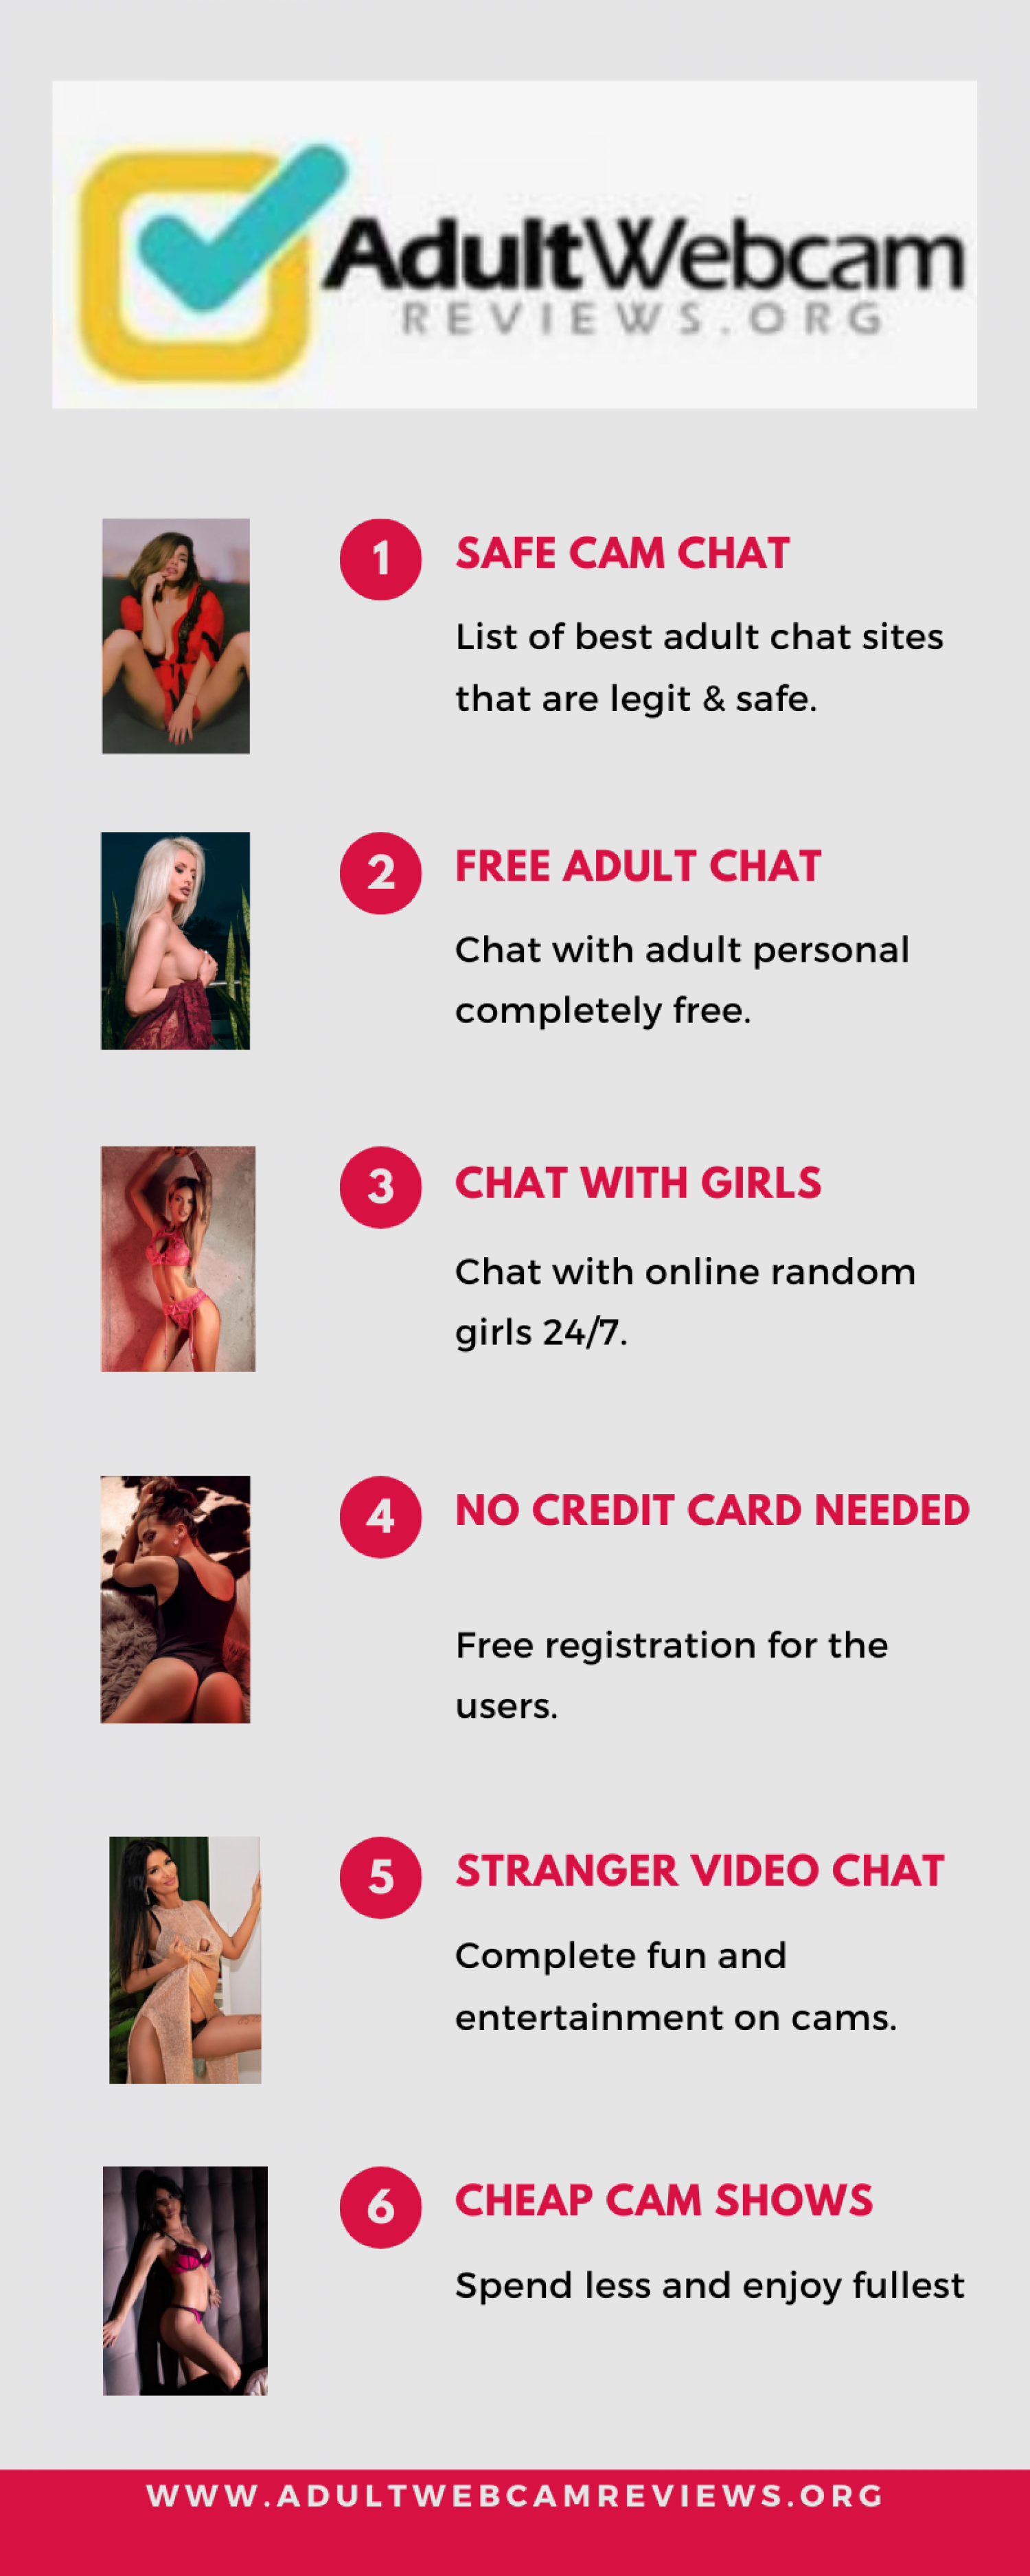 Adult Webcam Reviews - Top Cam Sites of 2019 Infographic